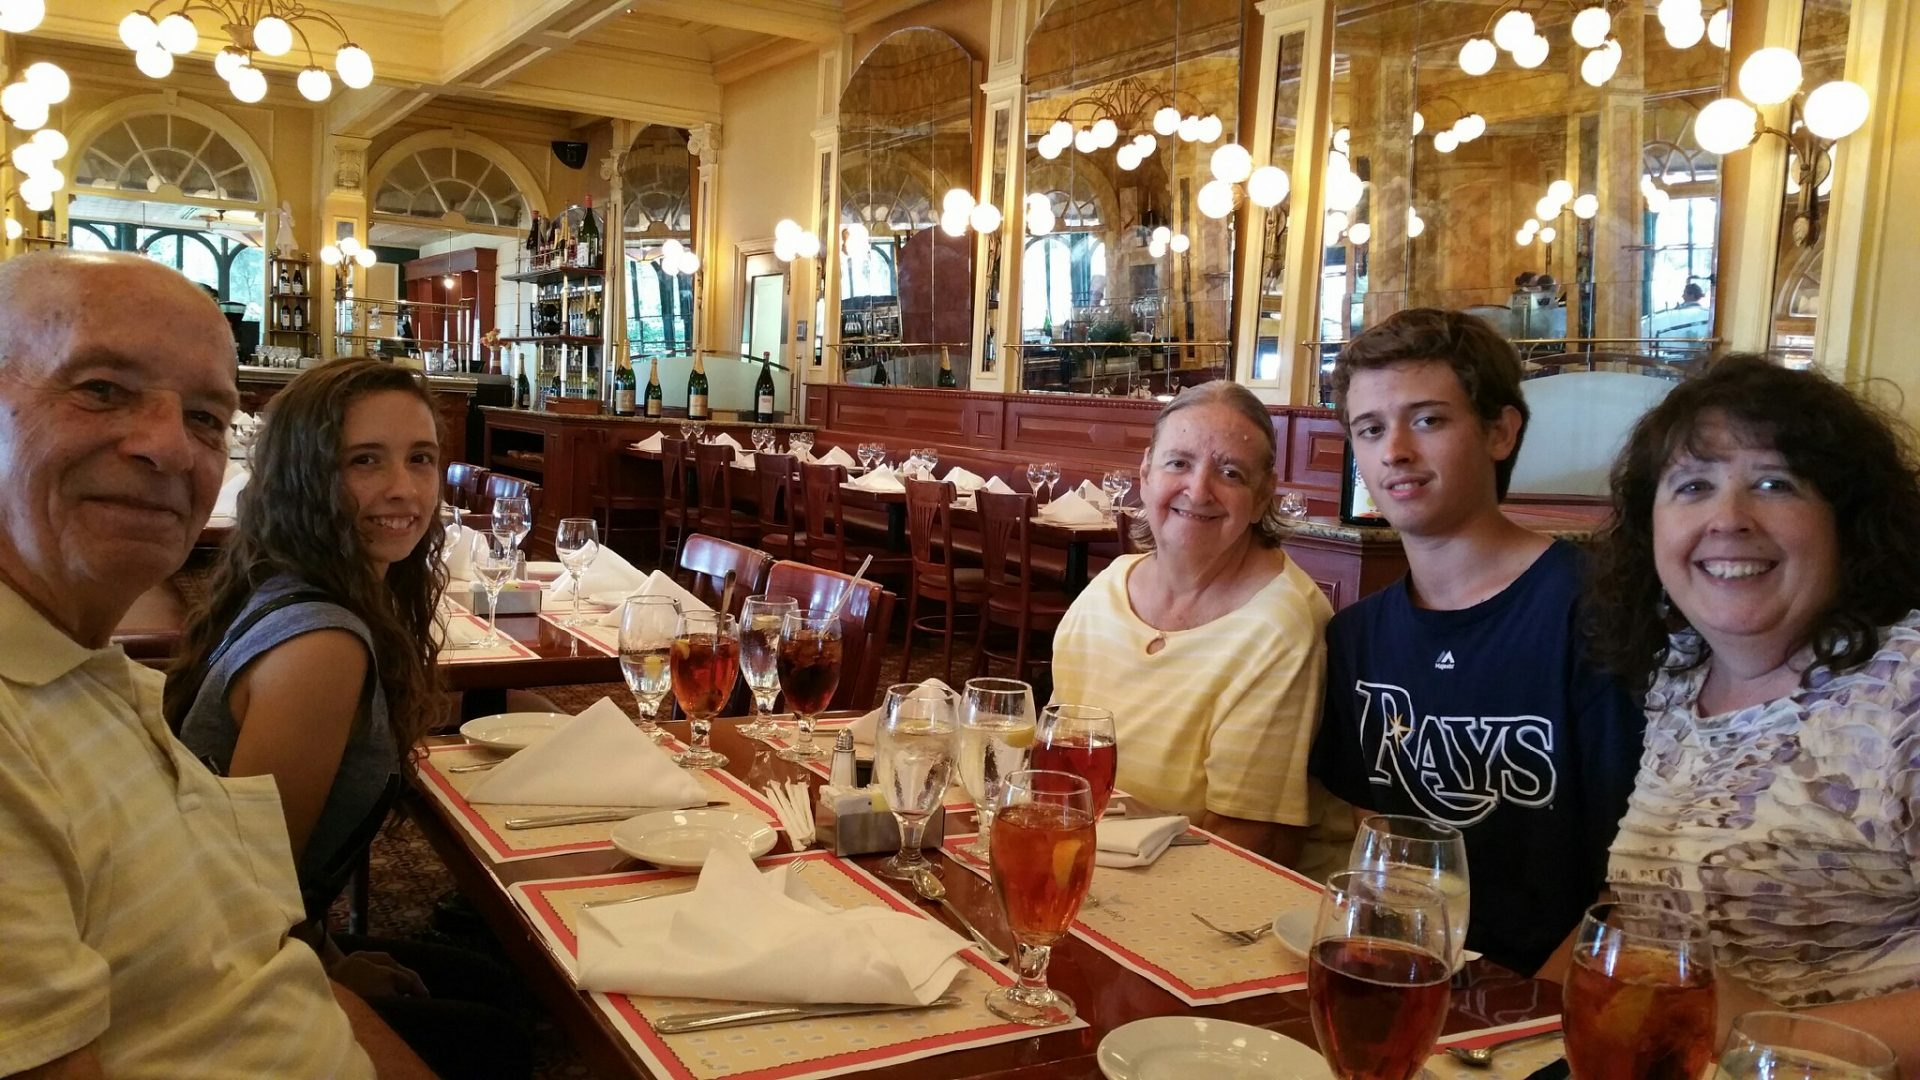 Dinner at Chefs de France in Epcot